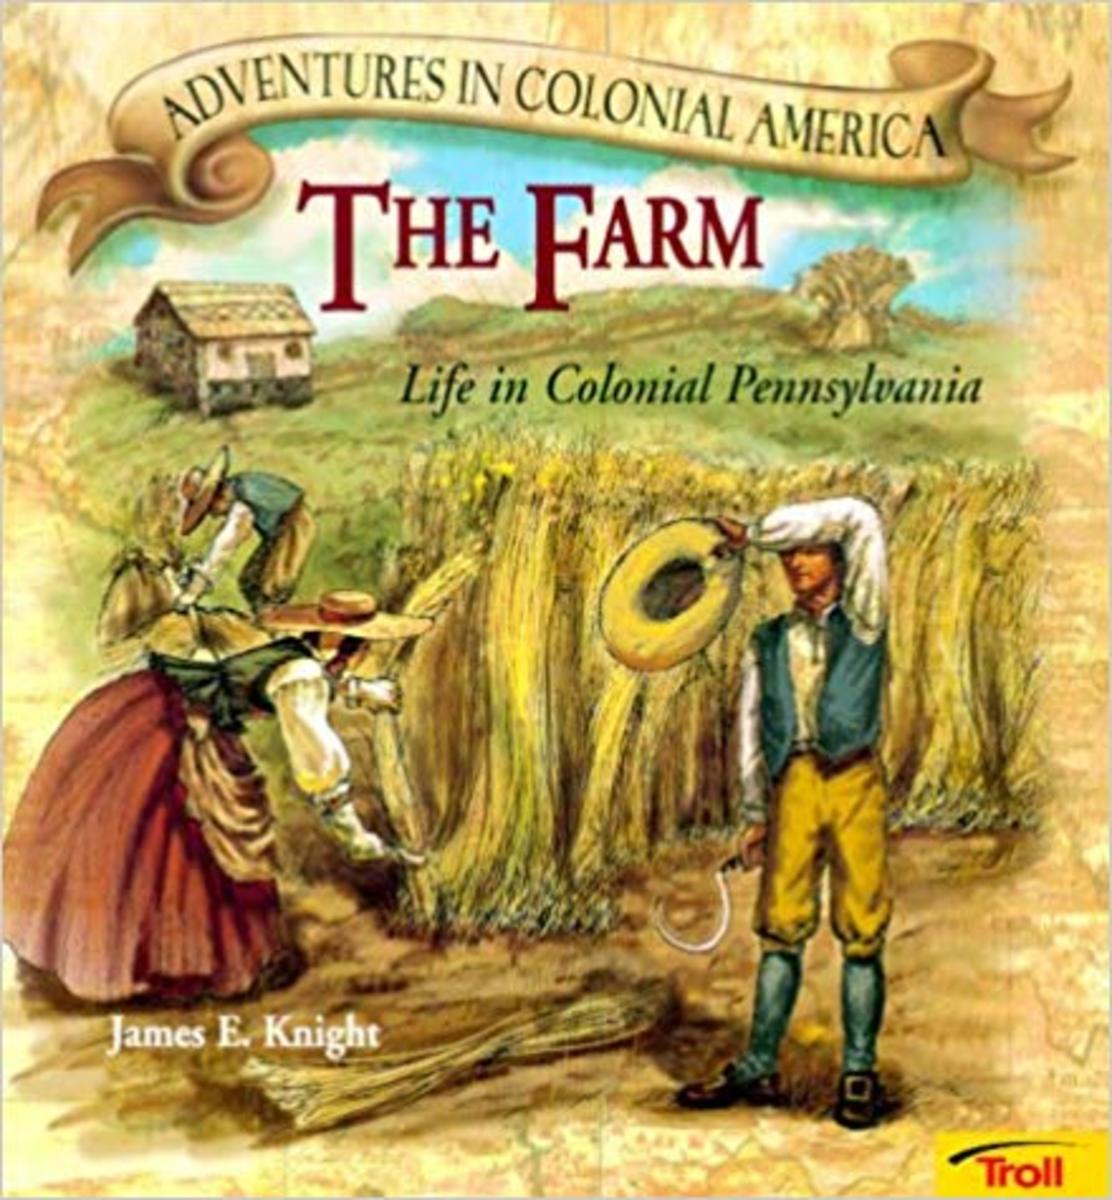 The Farm: Life in Colonial Pennsylvania (Adventures in Colonial America) by James E. Knight